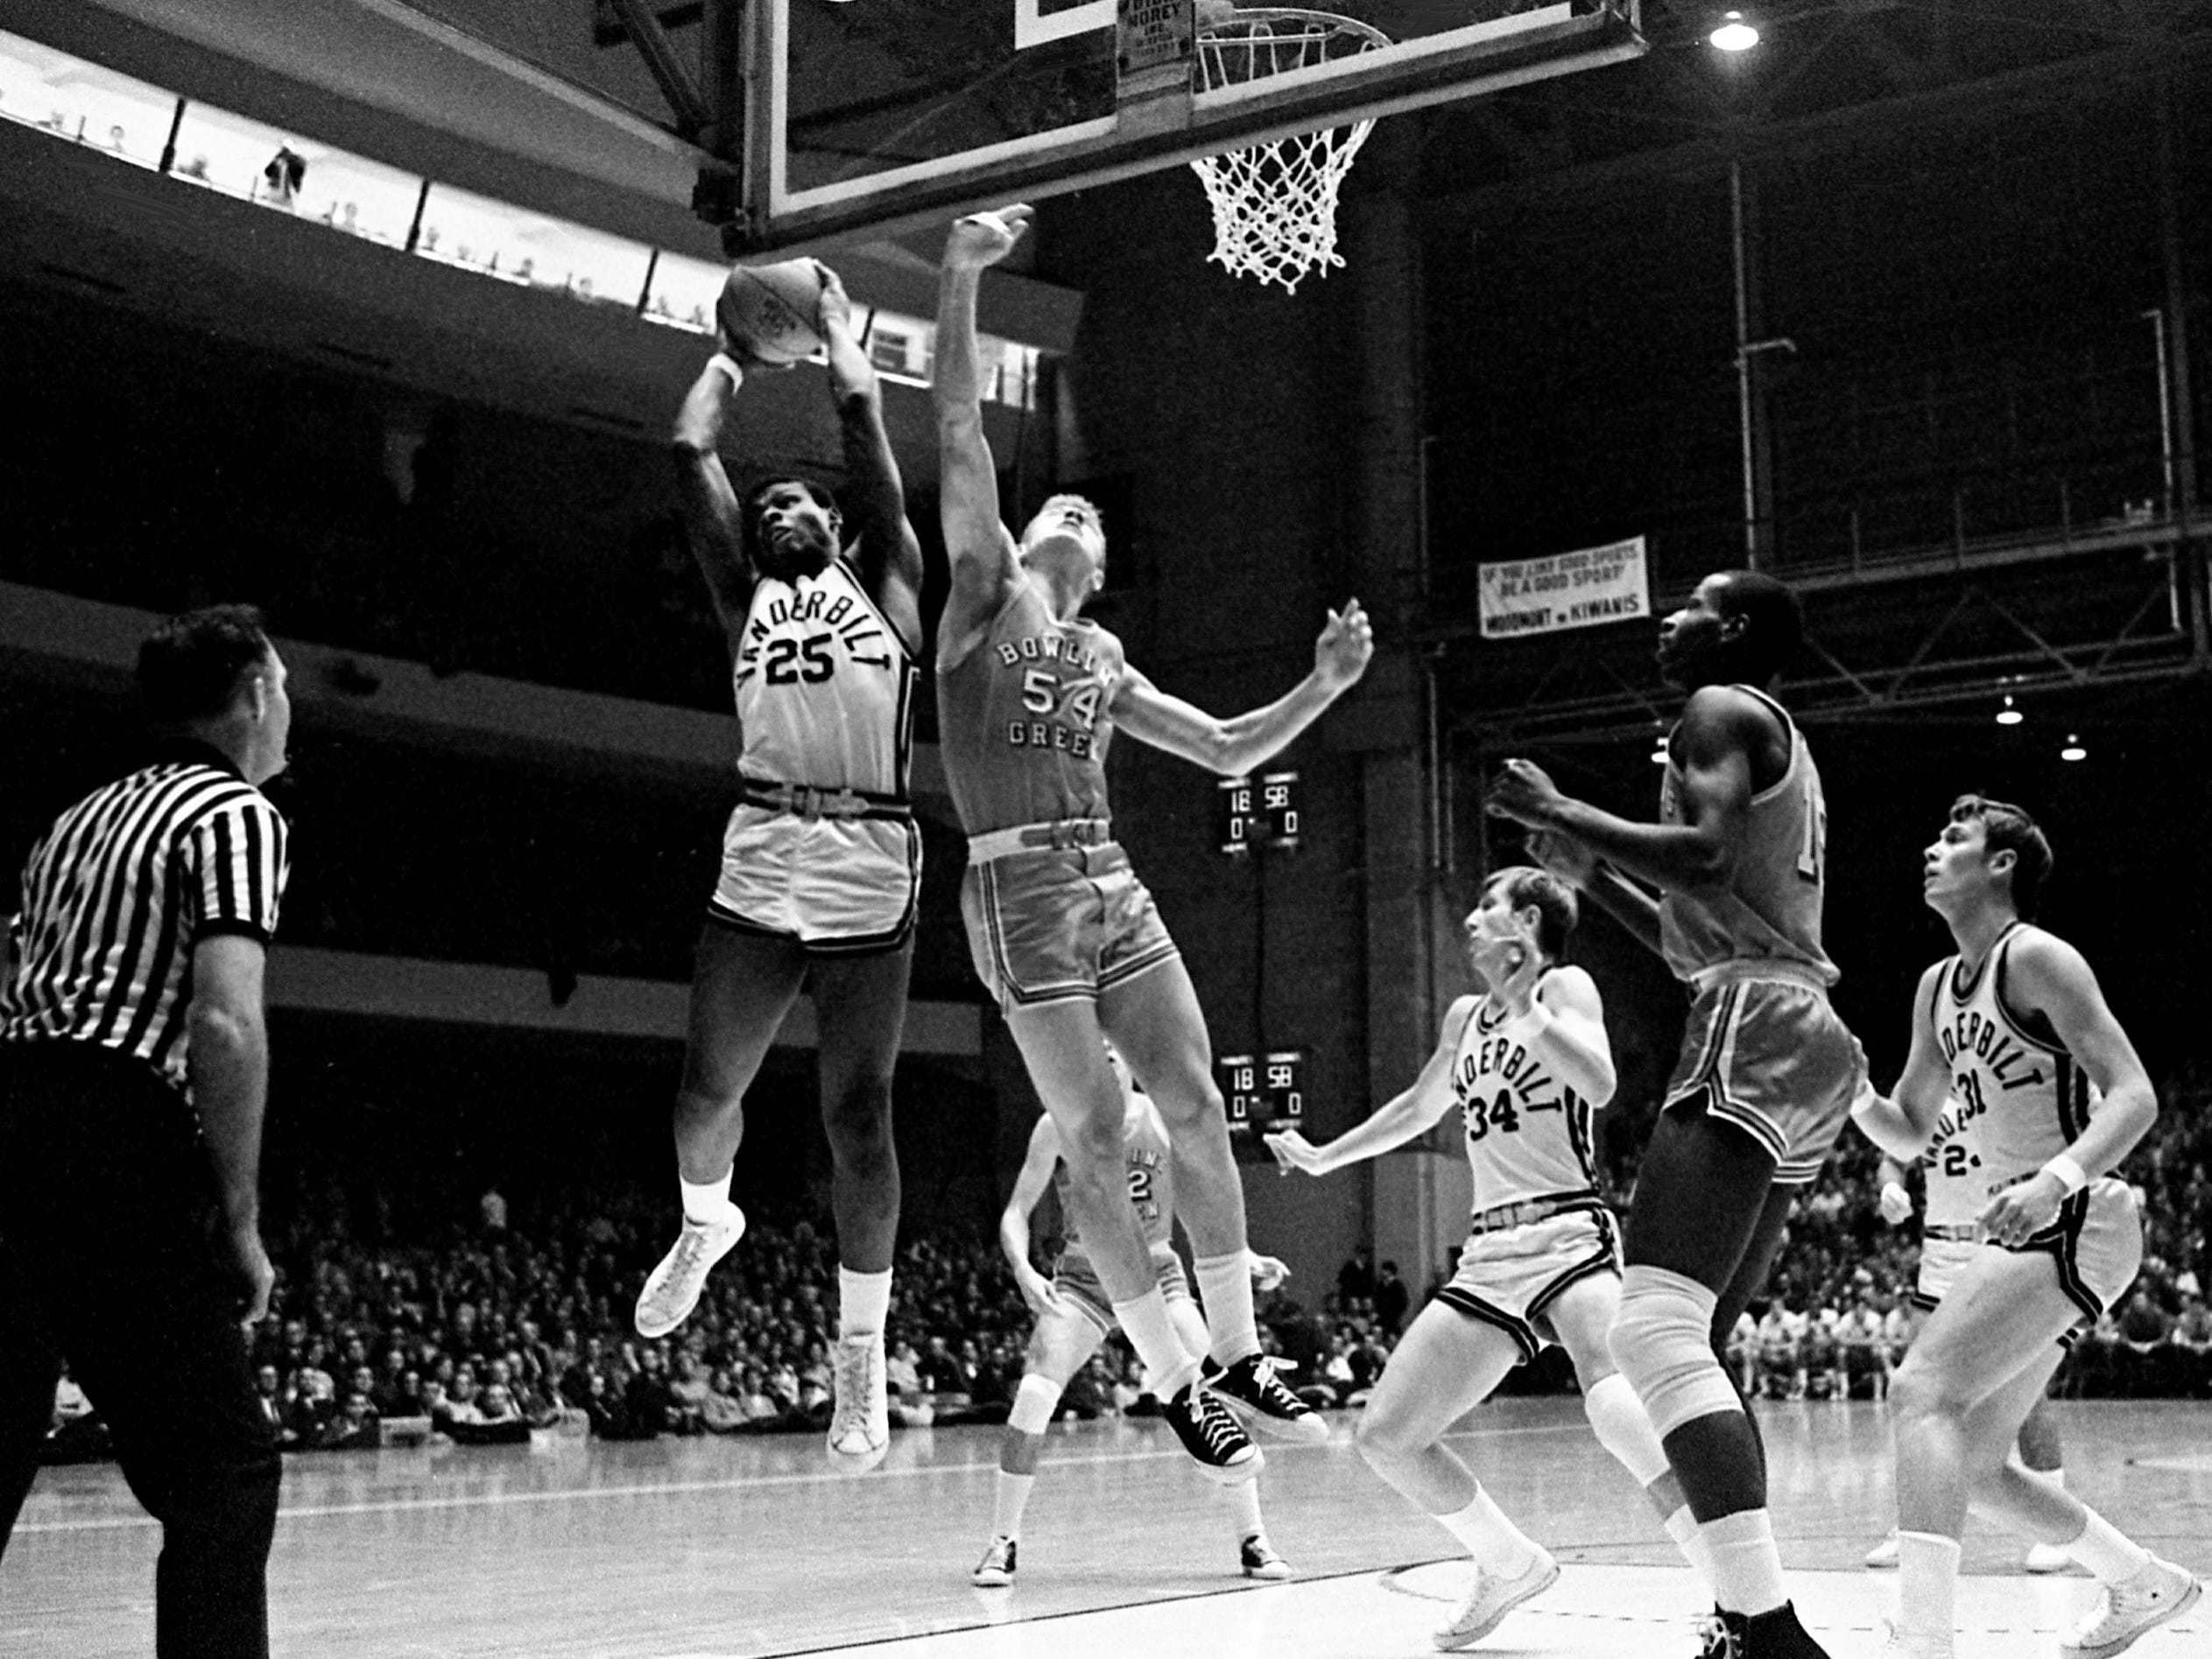 Vanderbilt junior forward Perry Wallace (25) grabs another rebound before getting hurt in the Commodores' 92-67 victory over Bowling Green State at Memorial Gym on Dec. 16, 1968.